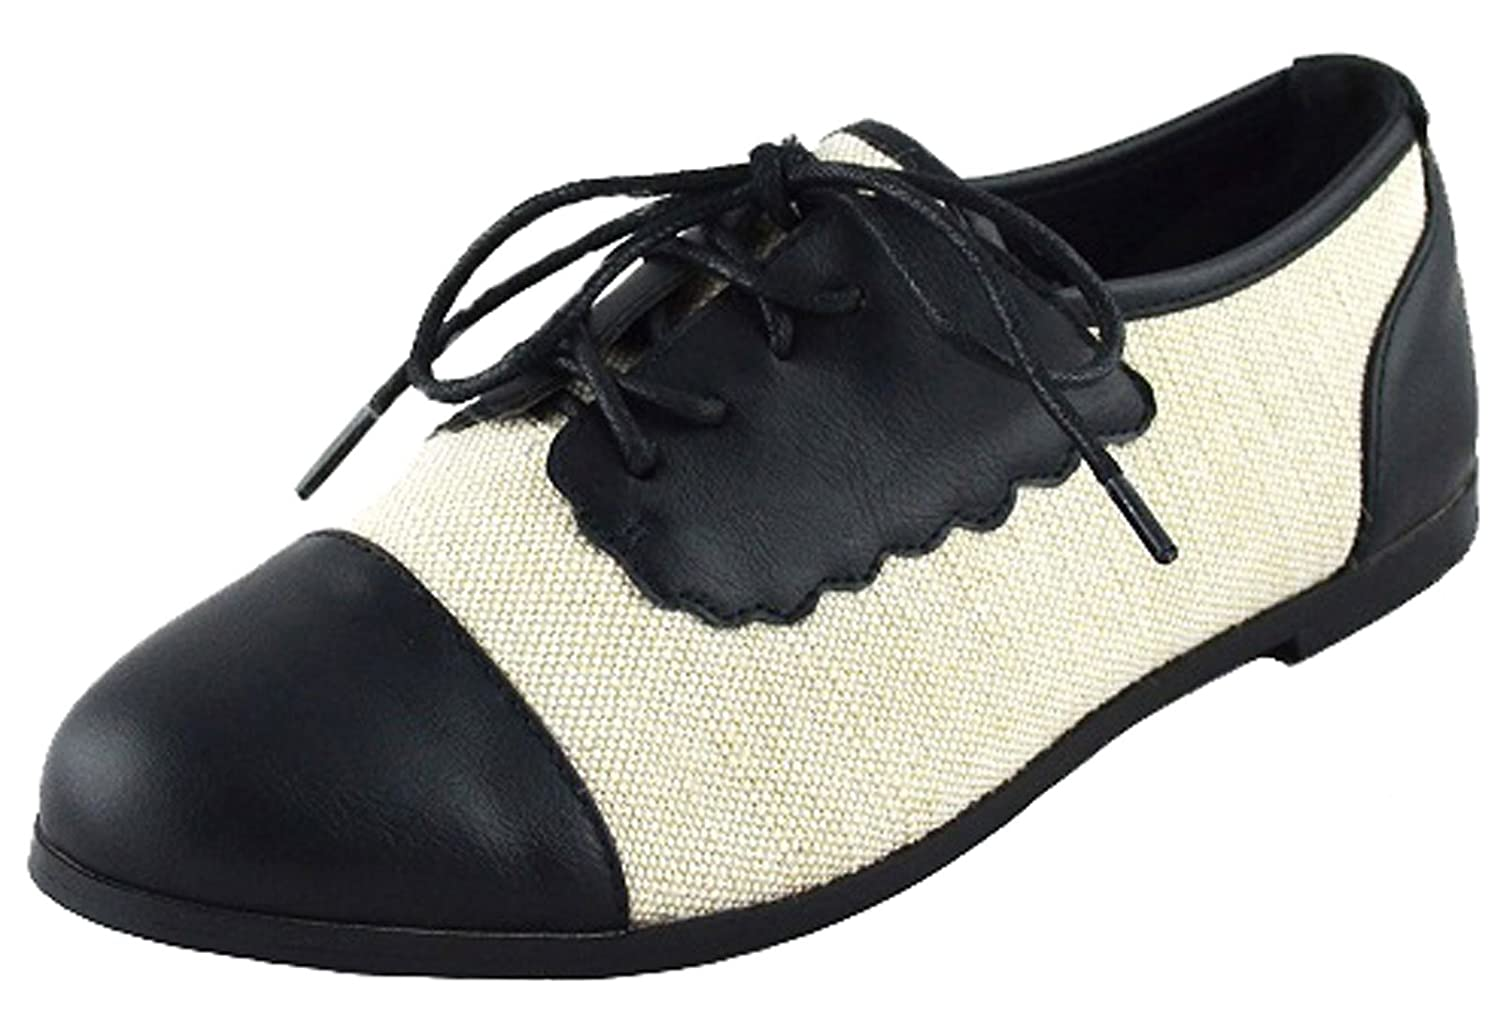 Saddle Shoes History Chase & Chloe Womens Two Tone Lace Up Oxford Flat $23.45 AT vintagedancer.com